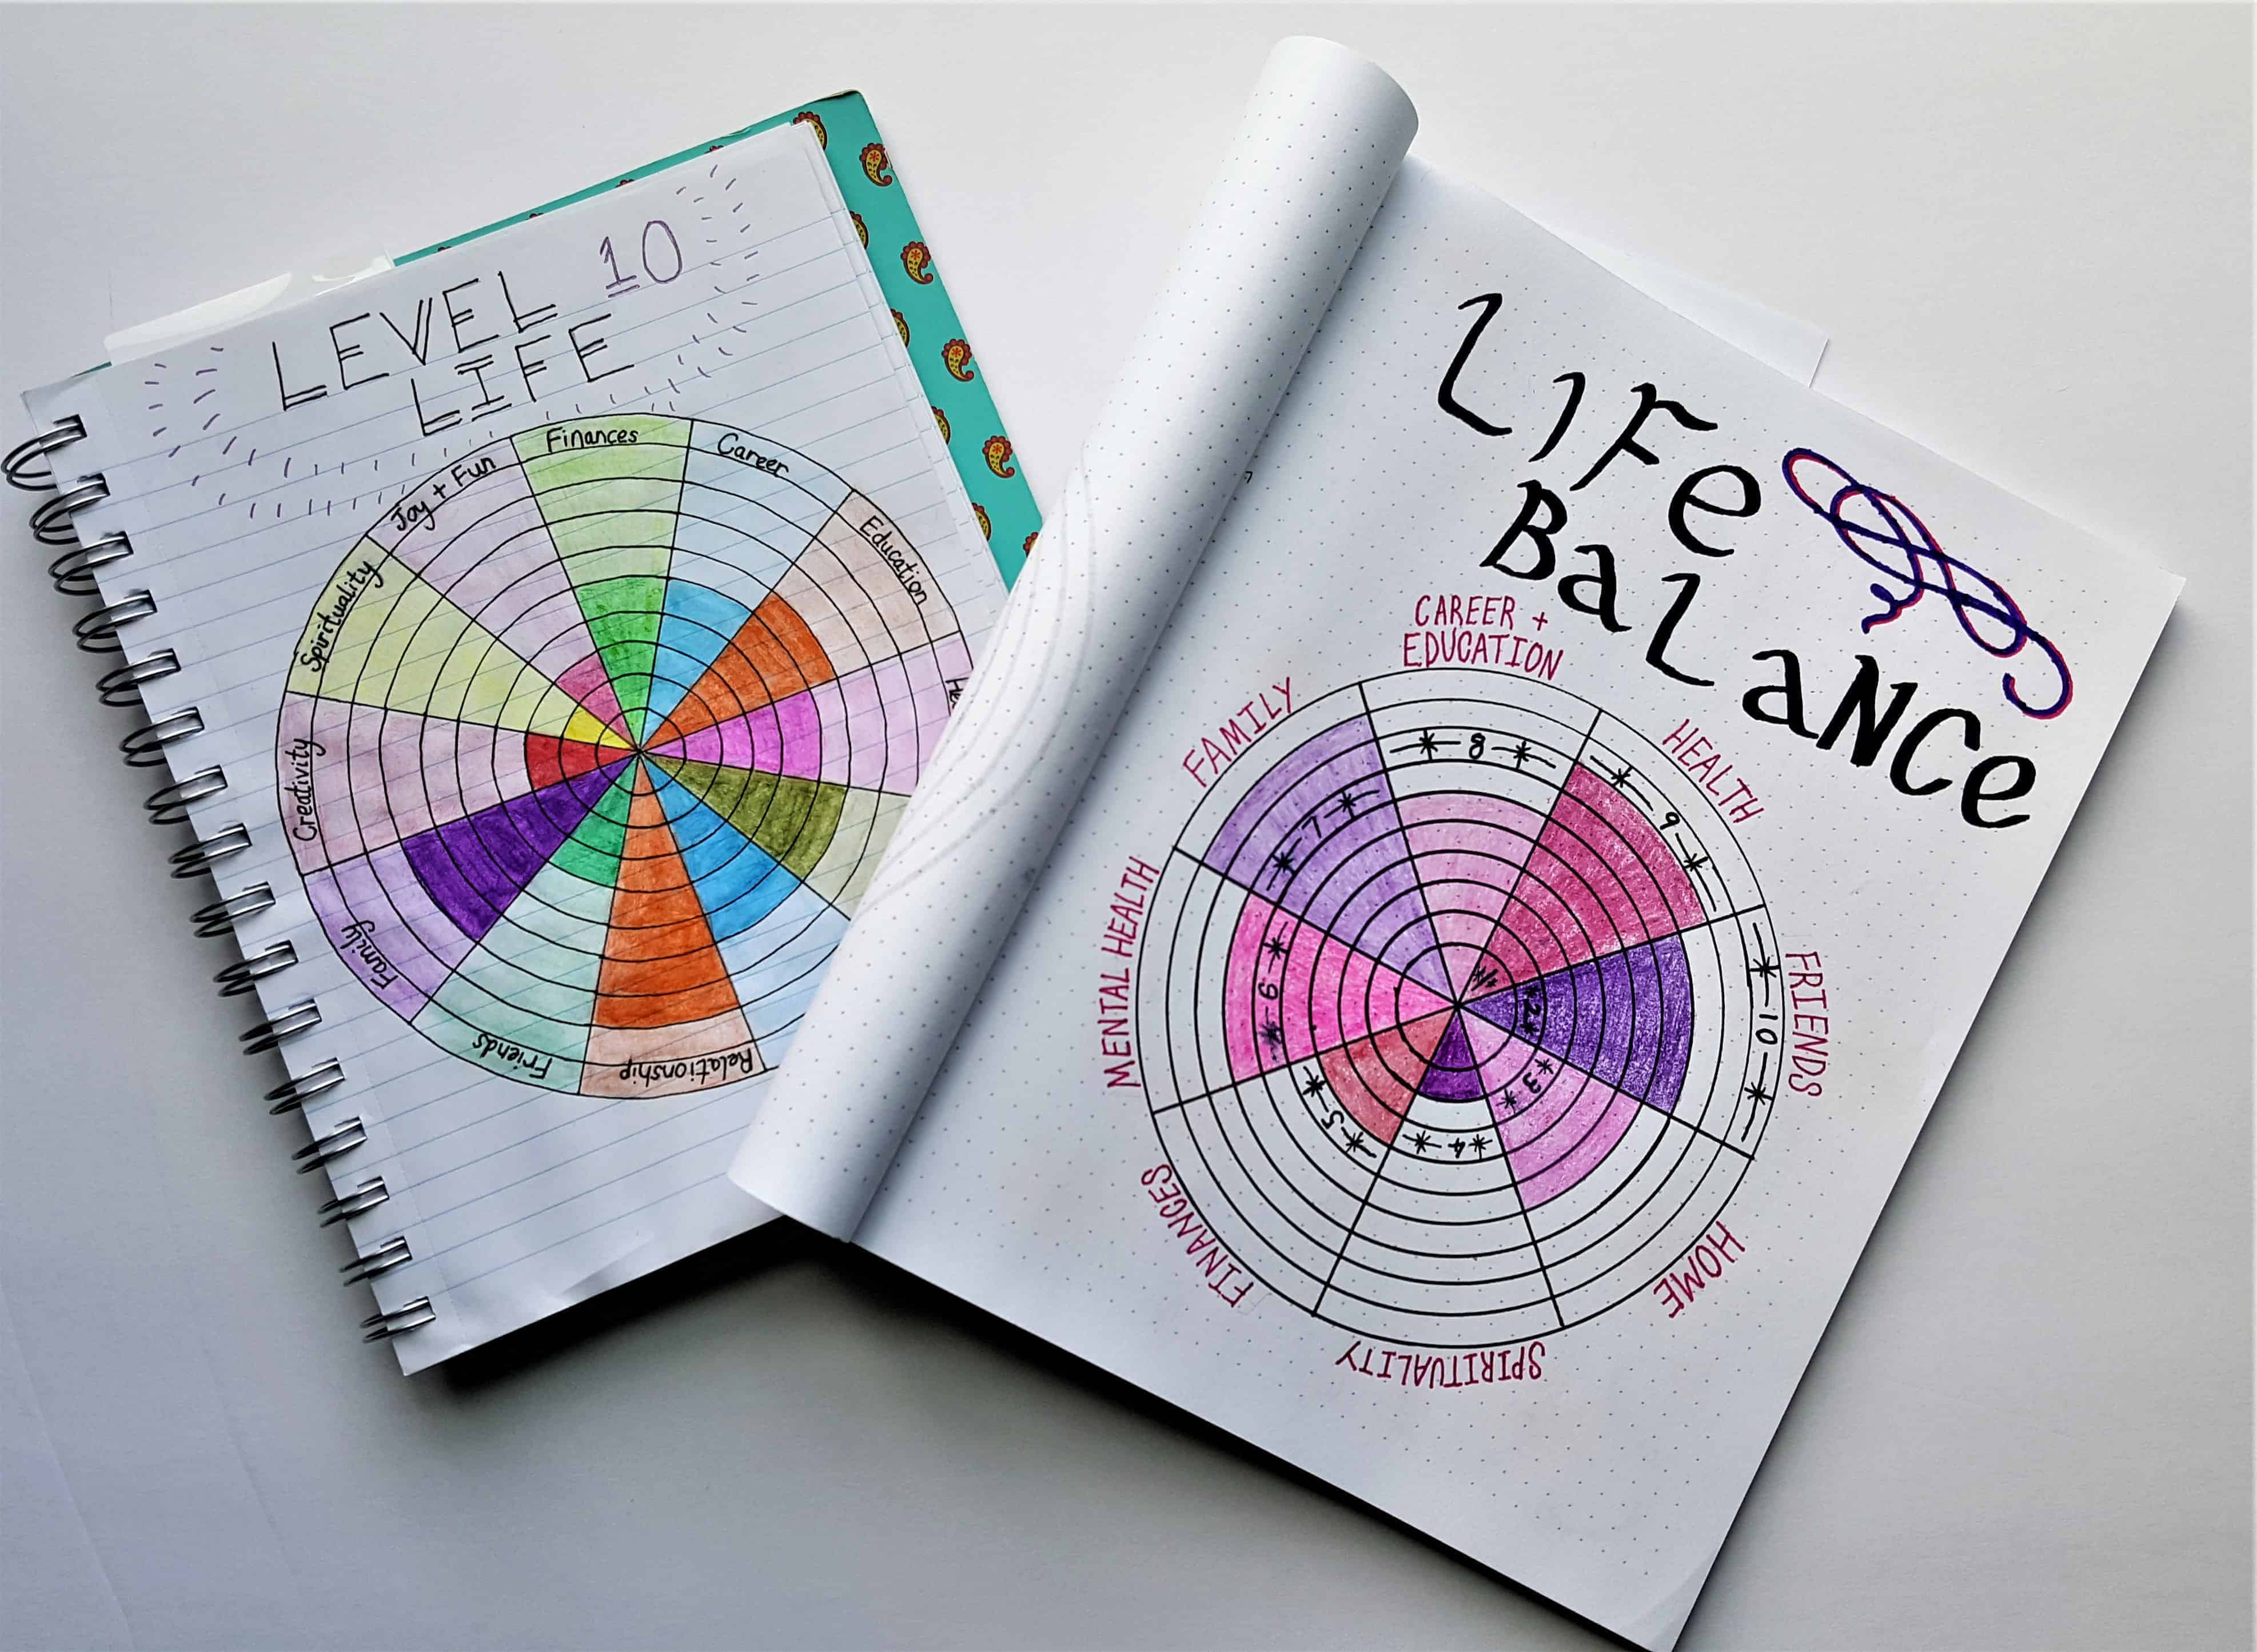 Bullet Journal Ideas to Make Life Easier - Plan a Self Reflection Day | Plane a day (or a few hours) to take time to assess where your life is going and set goals. Find your Level 10 Life. Find balance in all aspects of your life. Self care at its best!